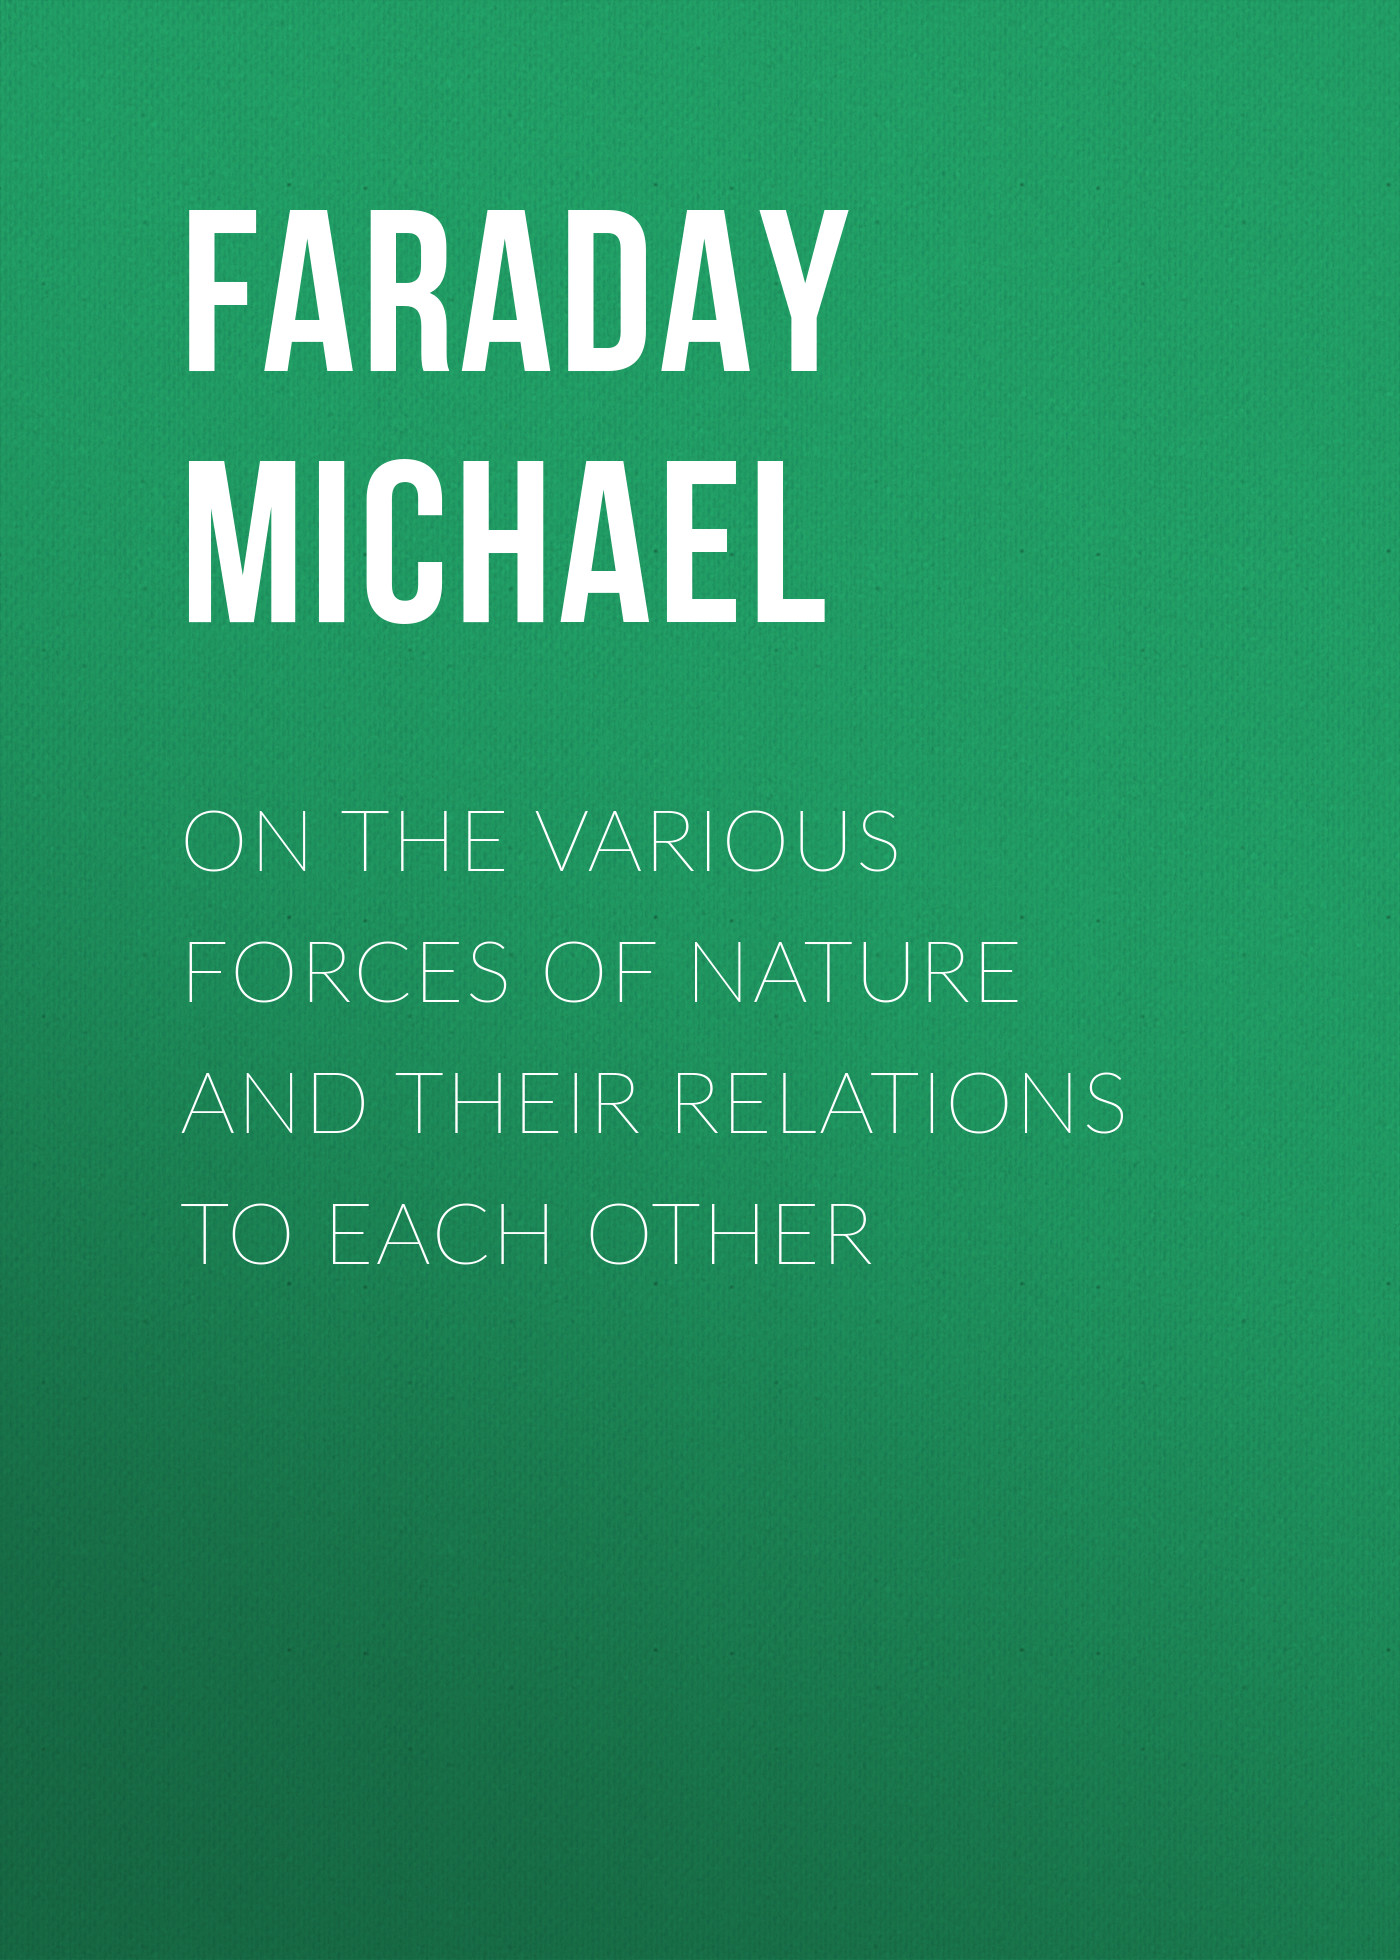 цена на Faraday Michael On the various forces of nature and their relations to each other